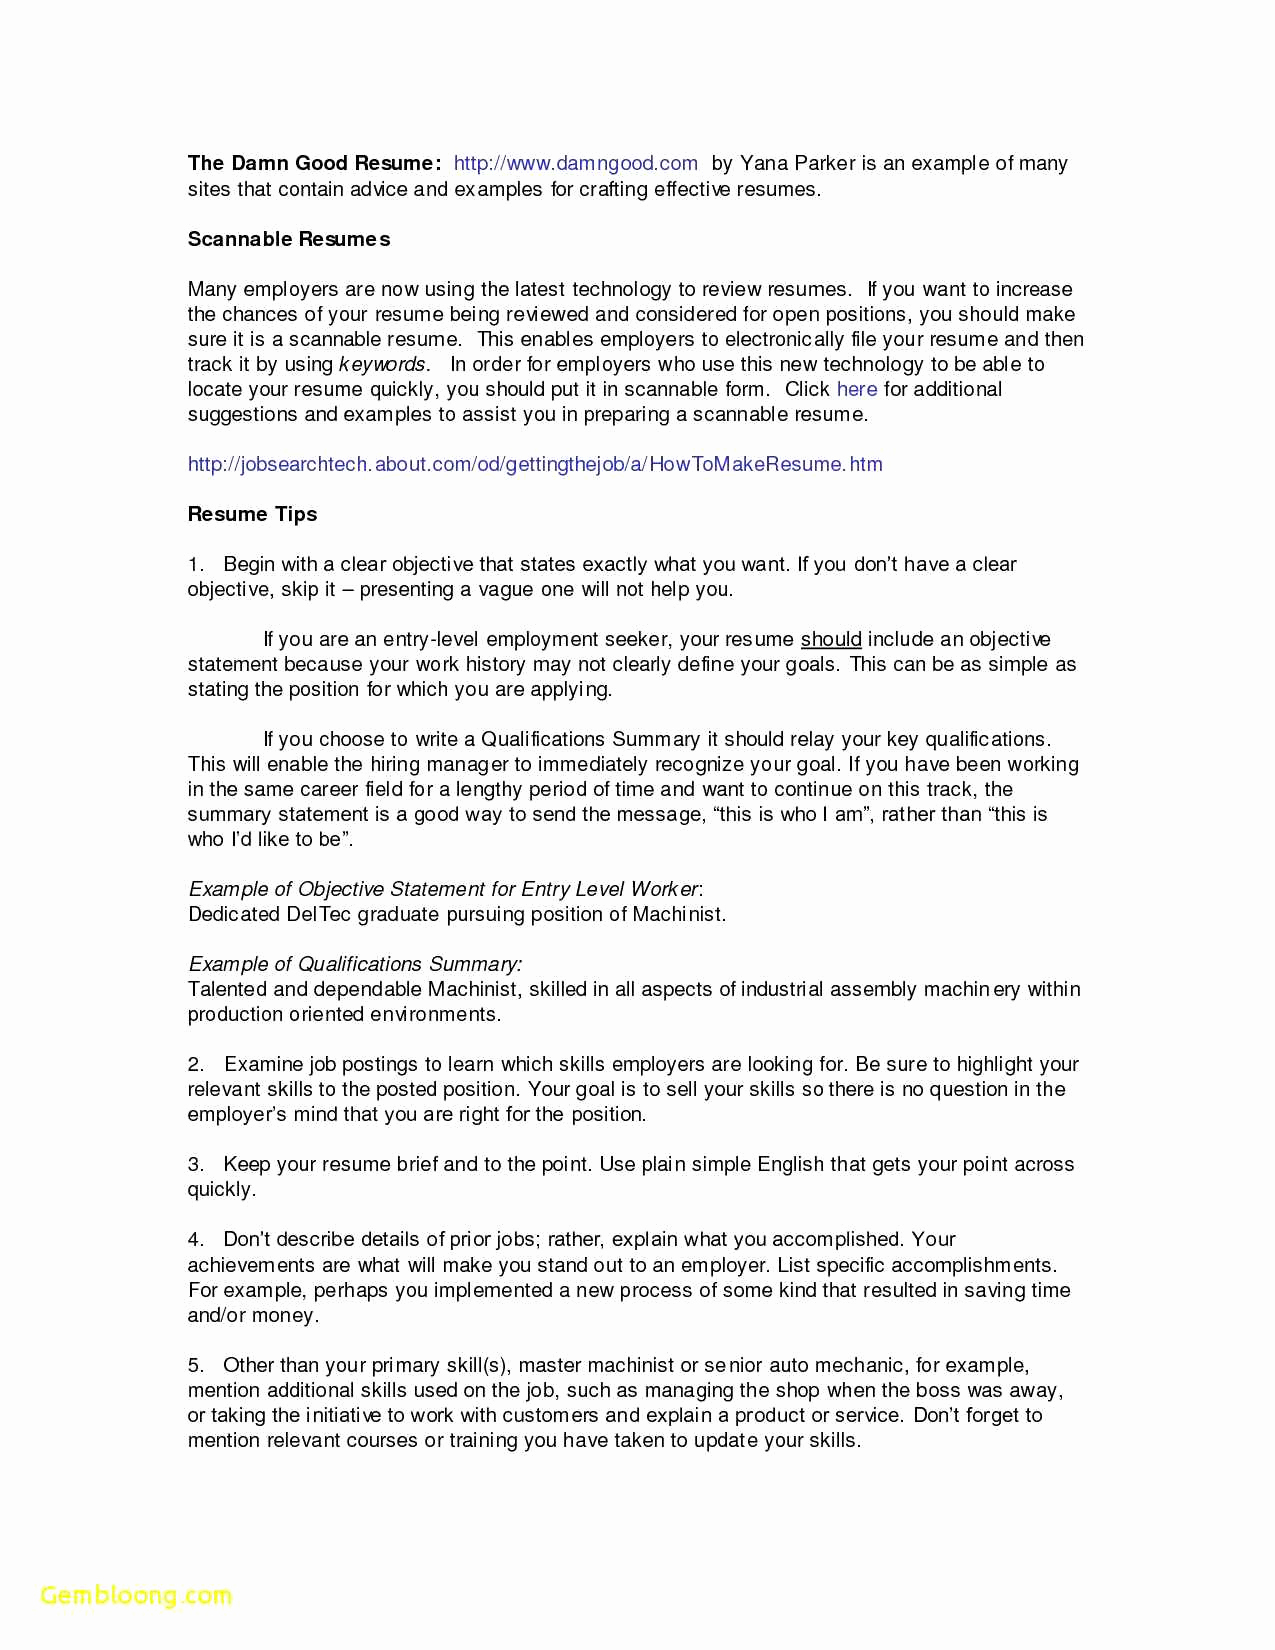 Prep Cook Job Description for Resume - Prep Cook Resume Sample Resume Examples for Cooking Jobs at Resume